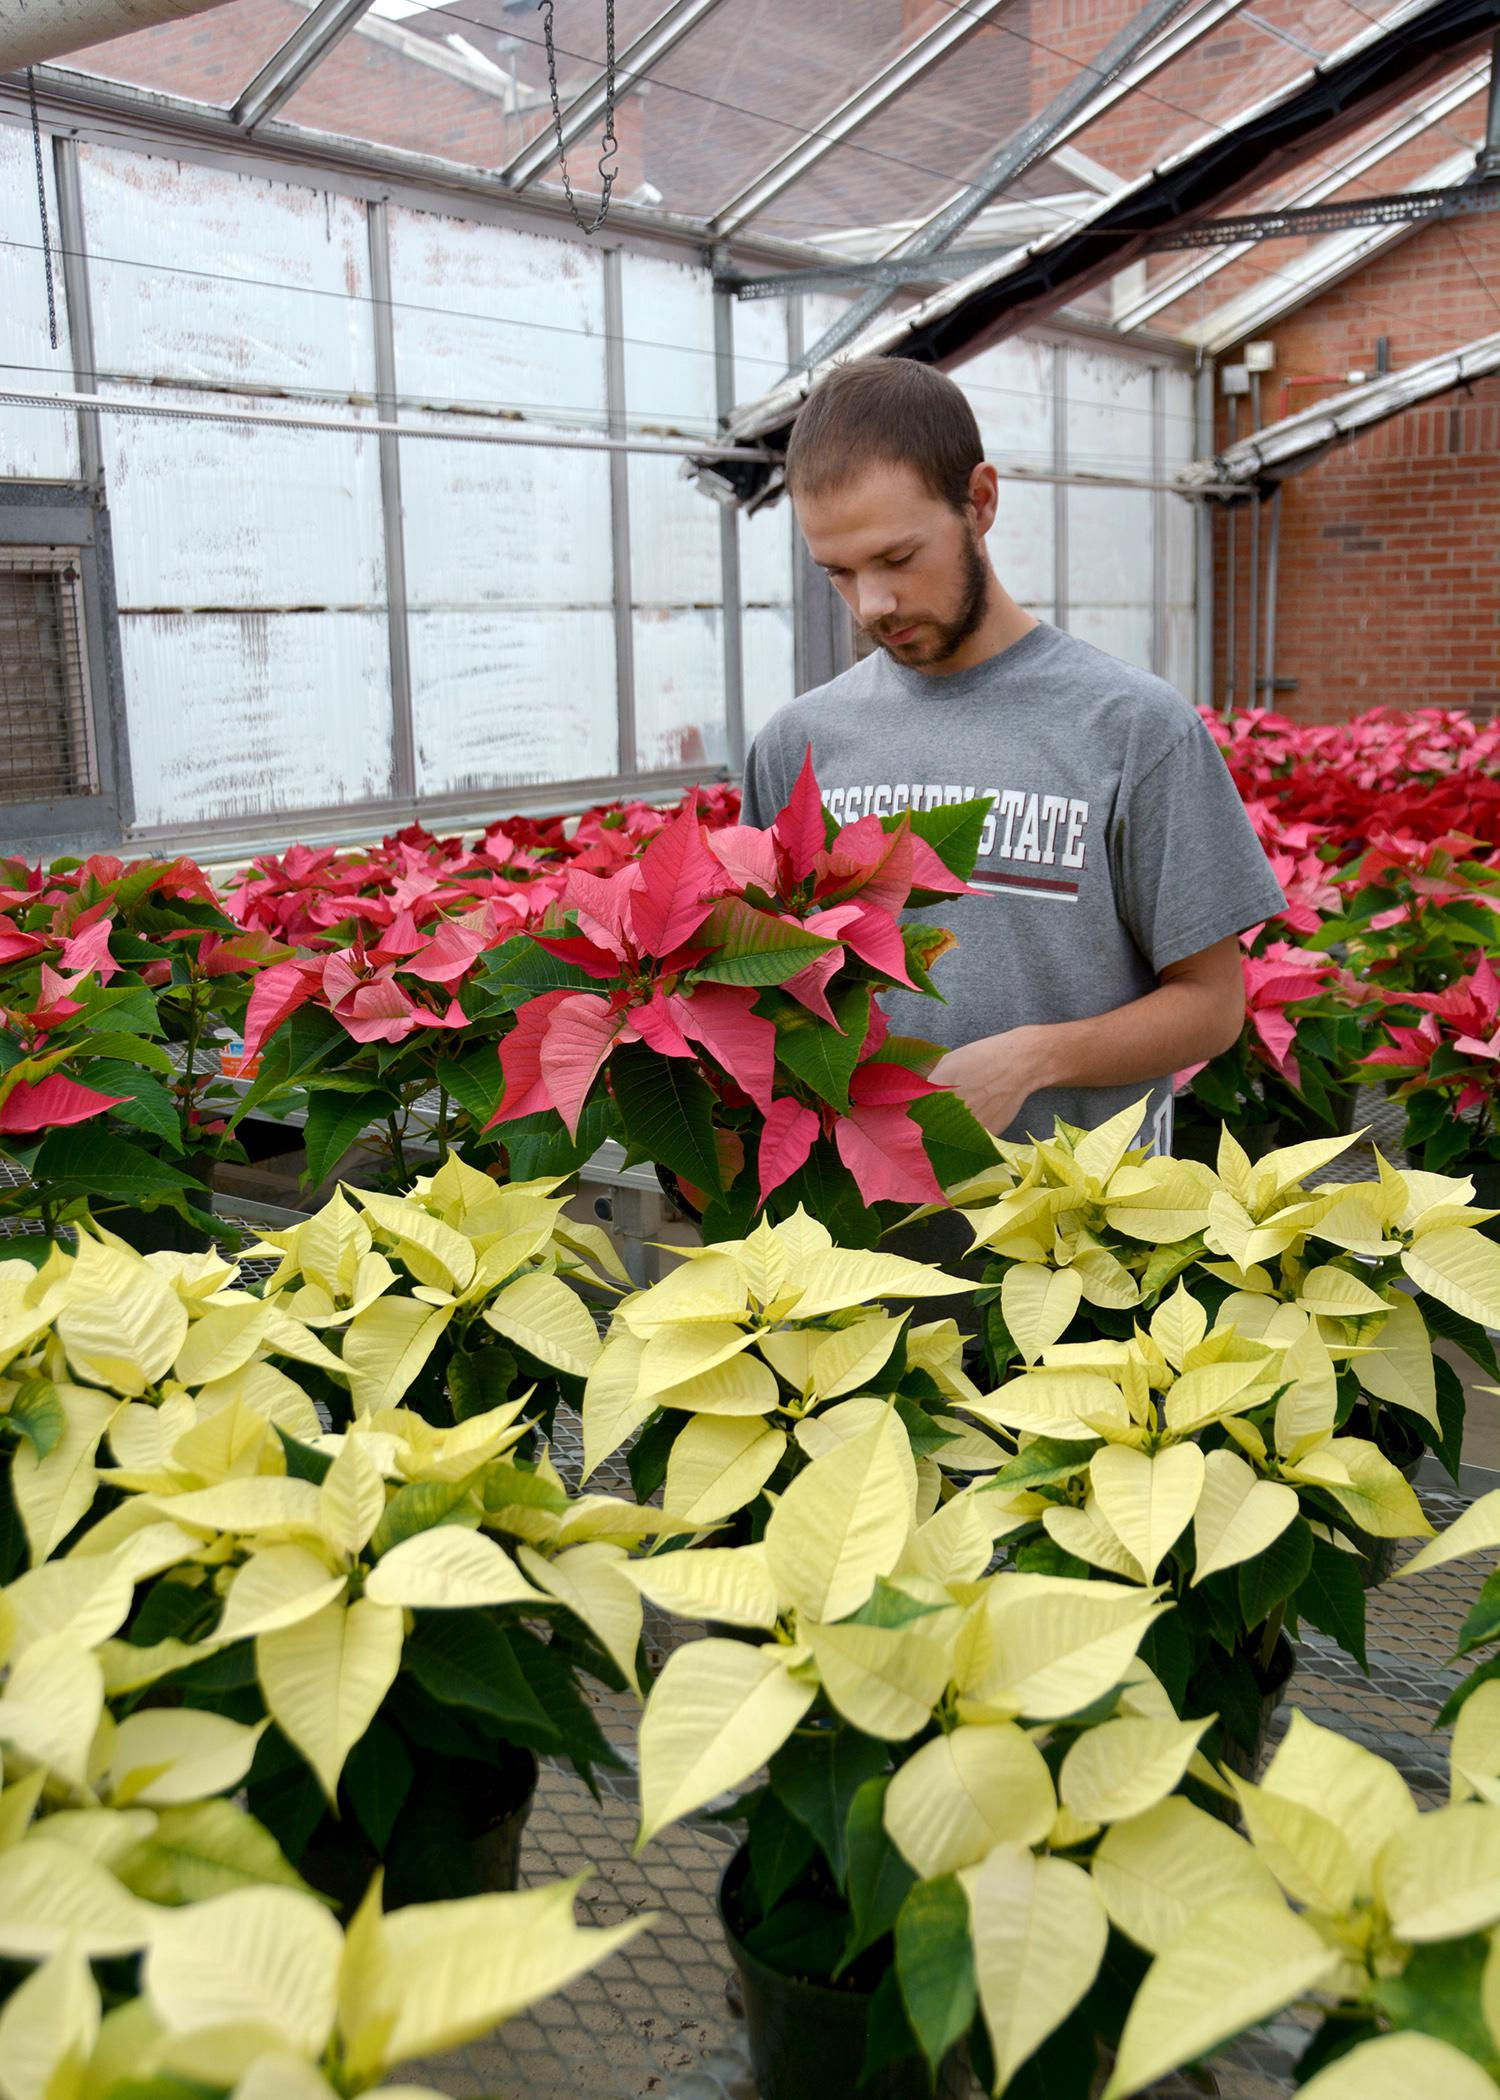 Mississippi State University Horticulture Club President Spencer Waschenbach of Kahoka, Missouri, examines poinsettias in a campus greenhouse on Nov. 25, 2014. The club will be selling poinsettias, Christmas cacti, succulents, living wreaths, mistletoe balls and ready-made table pieces in the annual Christmas Plant Sale from 8 a.m. until 5 p.m. on Dec. 5. (Photo by MSU Ag Communications/Linda Breazeale)